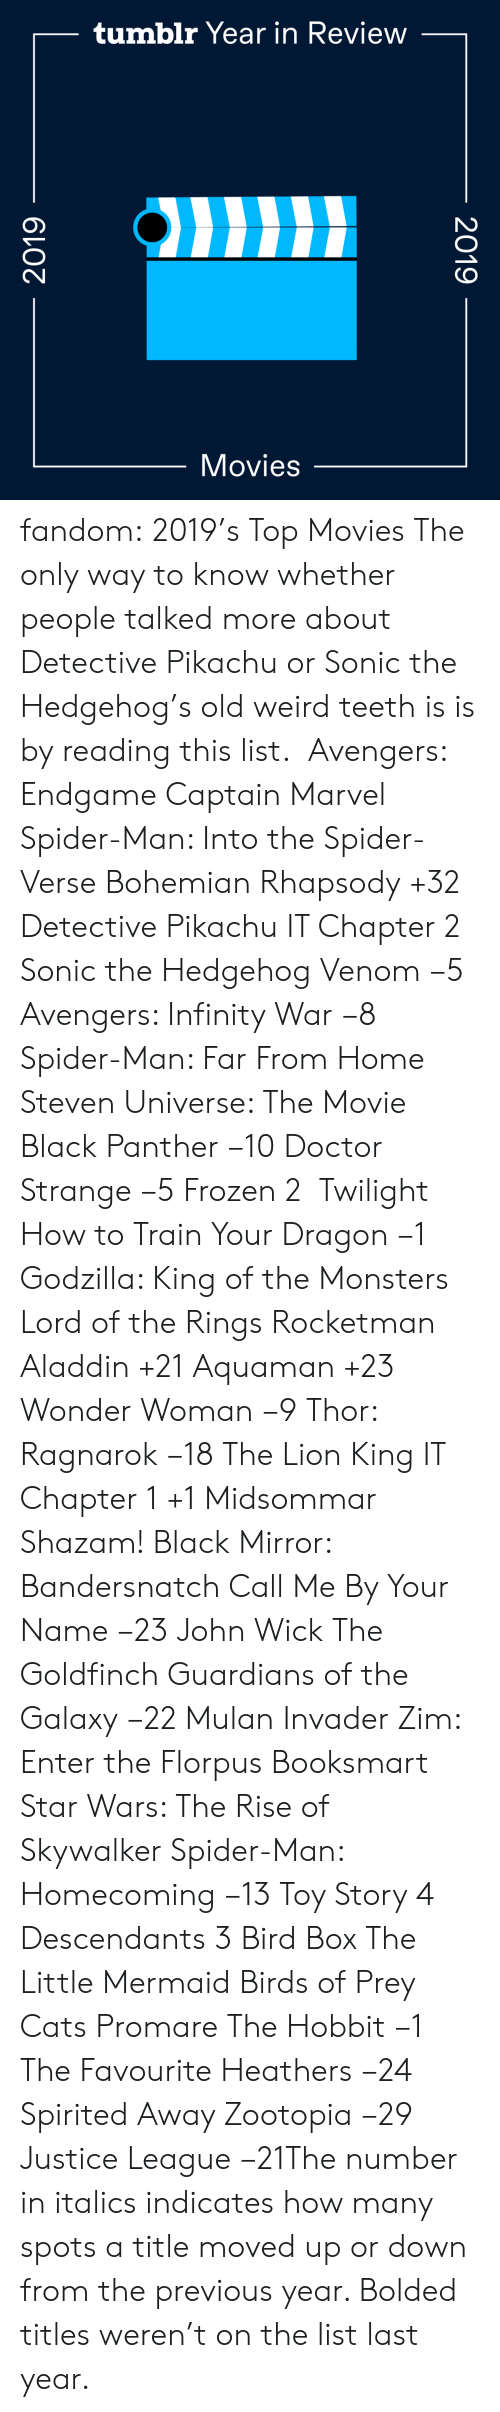 Marvel: tumblr Year in Review  Movies  2019  2019 fandom:  2019's Top Movies  The only way to know whether people talked more about Detective Pikachu or Sonic the Hedgehog's old weird teeth is is by reading this list.   Avengers: Endgame  Captain Marvel  Spider-Man: Into the Spider-Verse  Bohemian Rhapsody +32  Detective Pikachu  IT Chapter 2  Sonic the Hedgehog  Venom −5  Avengers: Infinity War −8  Spider-Man: Far From Home  Steven Universe: The Movie  Black Panther −10  Doctor Strange −5  Frozen 2   Twilight  How to Train Your Dragon −1  Godzilla: King of the Monsters  Lord of the Rings  Rocketman  Aladdin +21  Aquaman +23  Wonder Woman −9  Thor: Ragnarok −18  The Lion King  IT Chapter 1 +1  Midsommar  Shazam!  Black Mirror: Bandersnatch  Call Me By Your Name −23  John Wick  The Goldfinch  Guardians of the Galaxy −22  Mulan  Invader Zim: Enter the Florpus  Booksmart  Star Wars: The Rise of Skywalker  Spider-Man: Homecoming −13  Toy Story 4  Descendants 3  Bird Box  The Little Mermaid  Birds of Prey  Cats  Promare  The Hobbit −1  The Favourite  Heathers −24  Spirited Away  Zootopia −29 Justice League −21The number in italics indicates how many spots a title moved up or down from the previous year. Bolded titles weren't on the list last year.